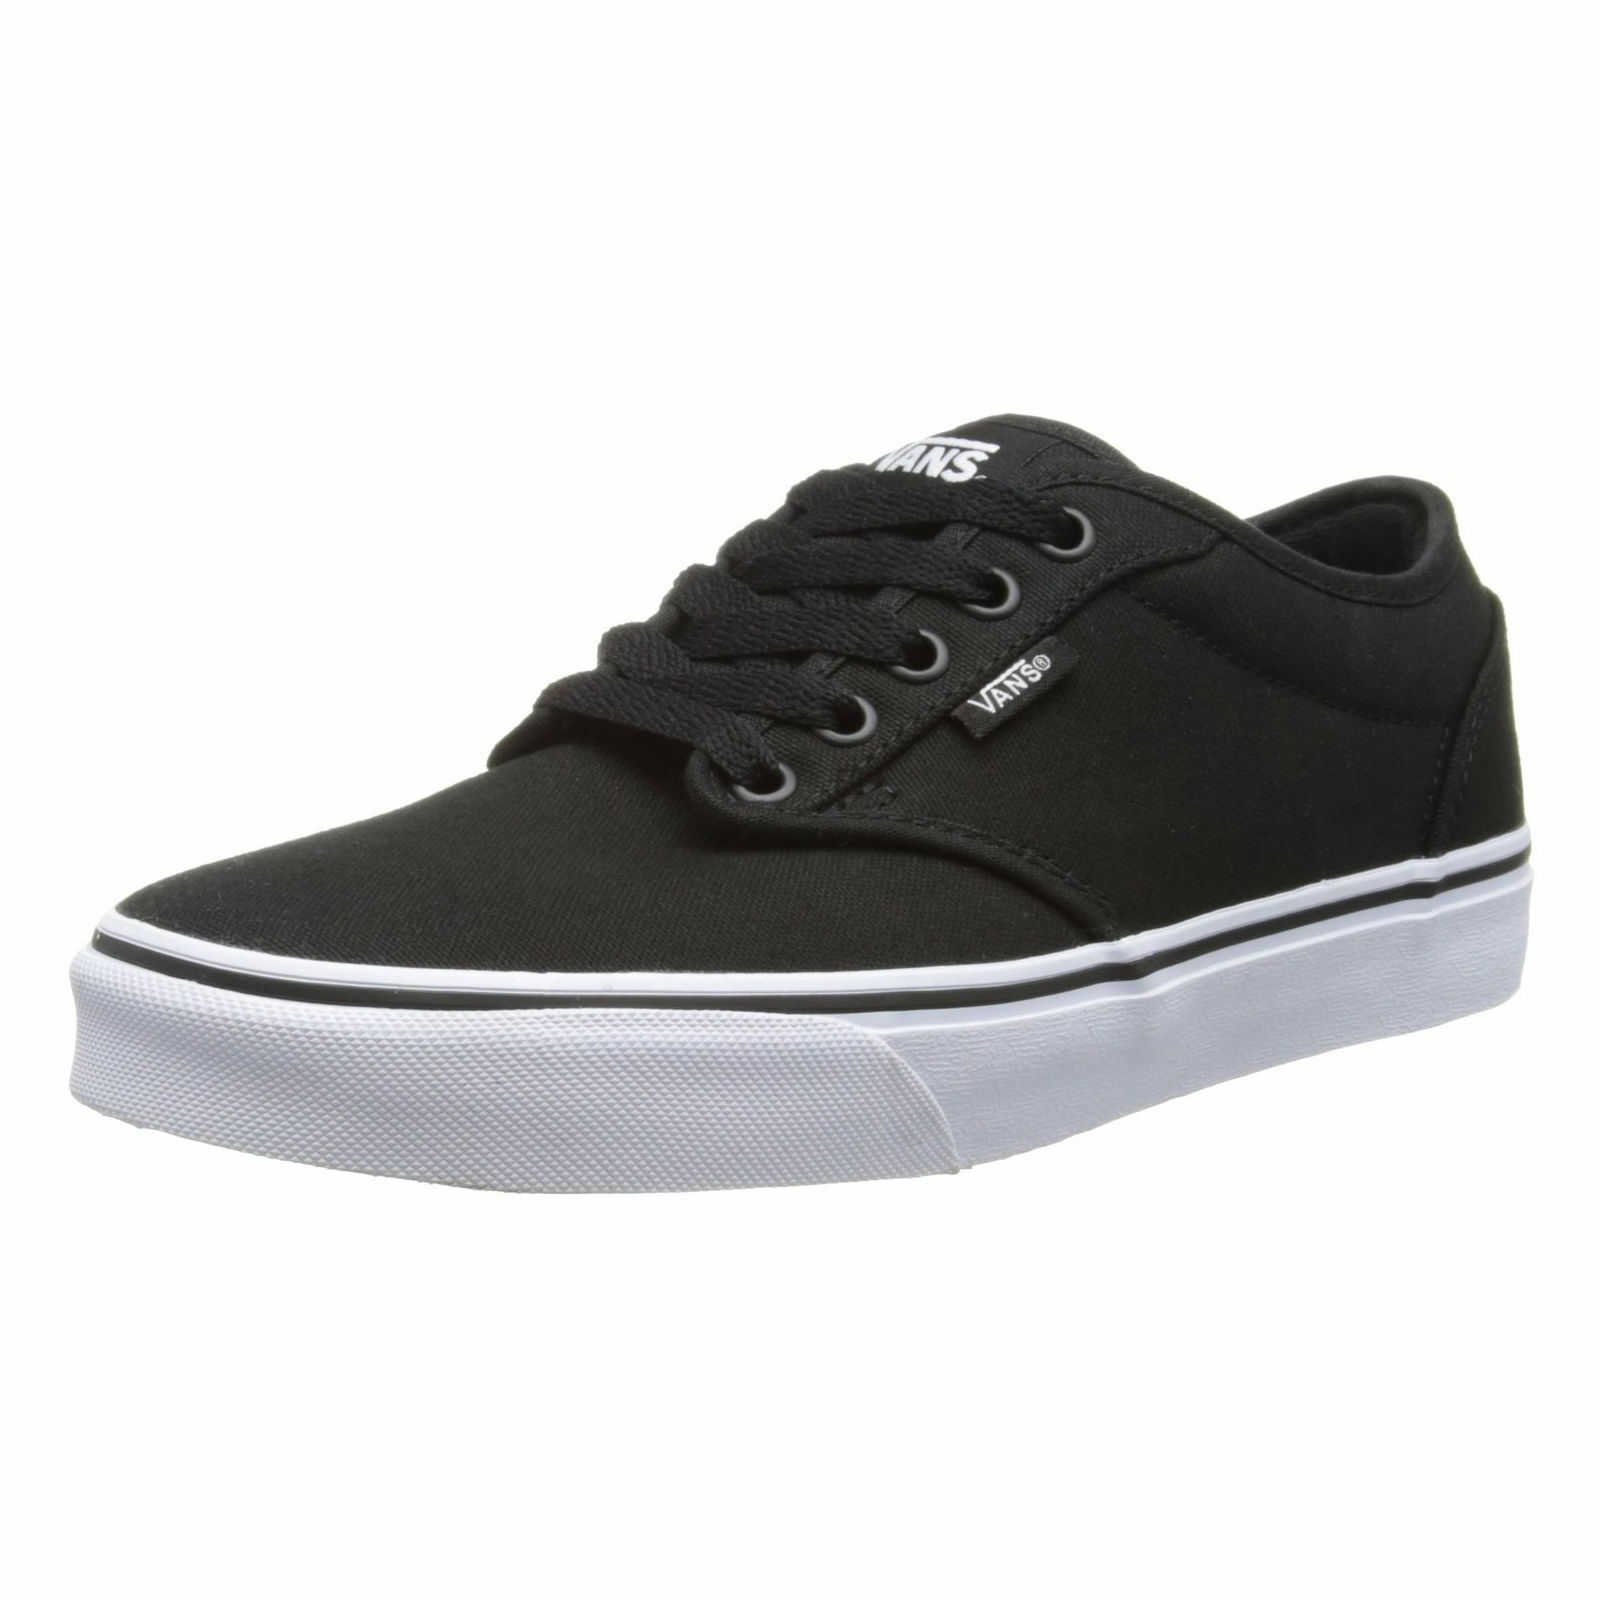 VANS Atwood Trainers Hombre Canvas Skater Trainers Atwood Plain Zapatos Lace Up Plimsoll Negro Blanco a62692